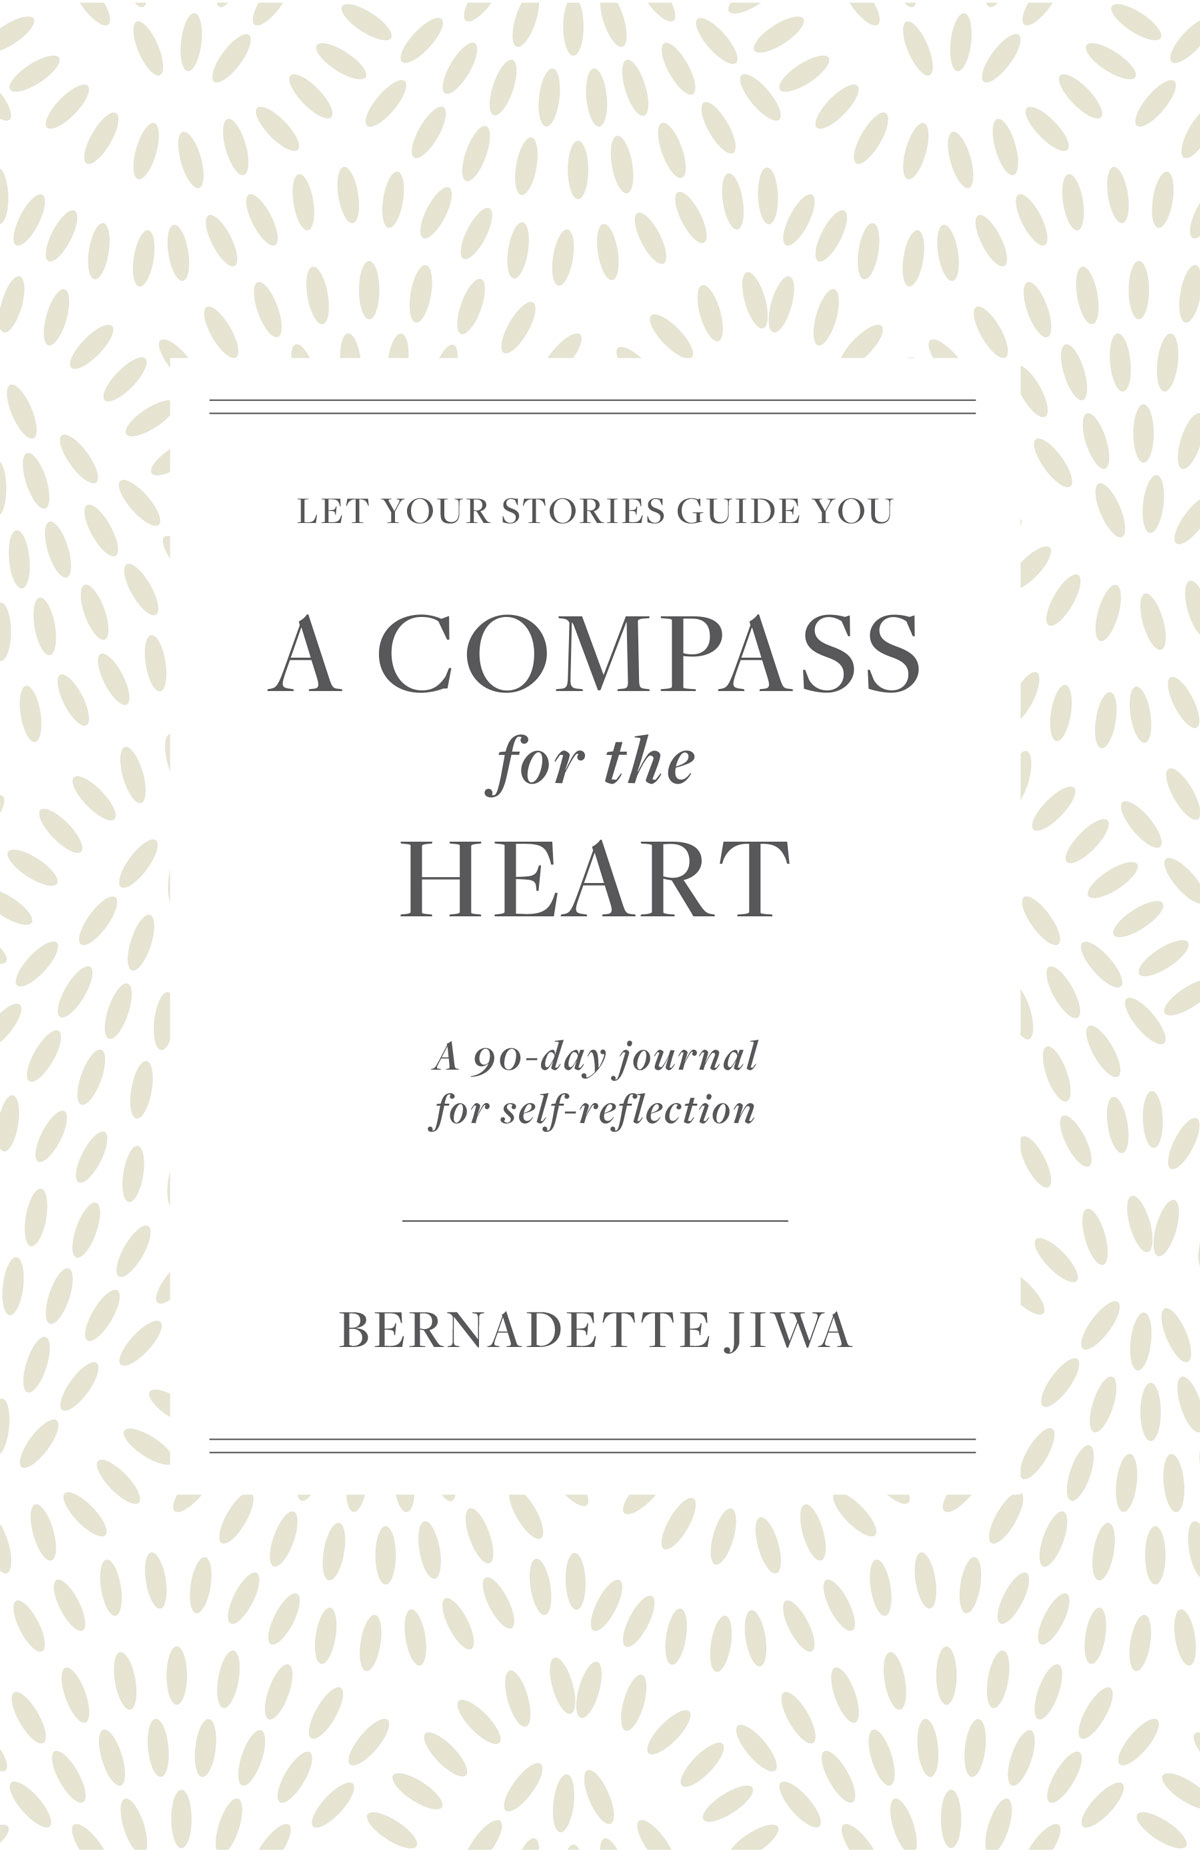 A-Compass-for-the-Heart-Cover